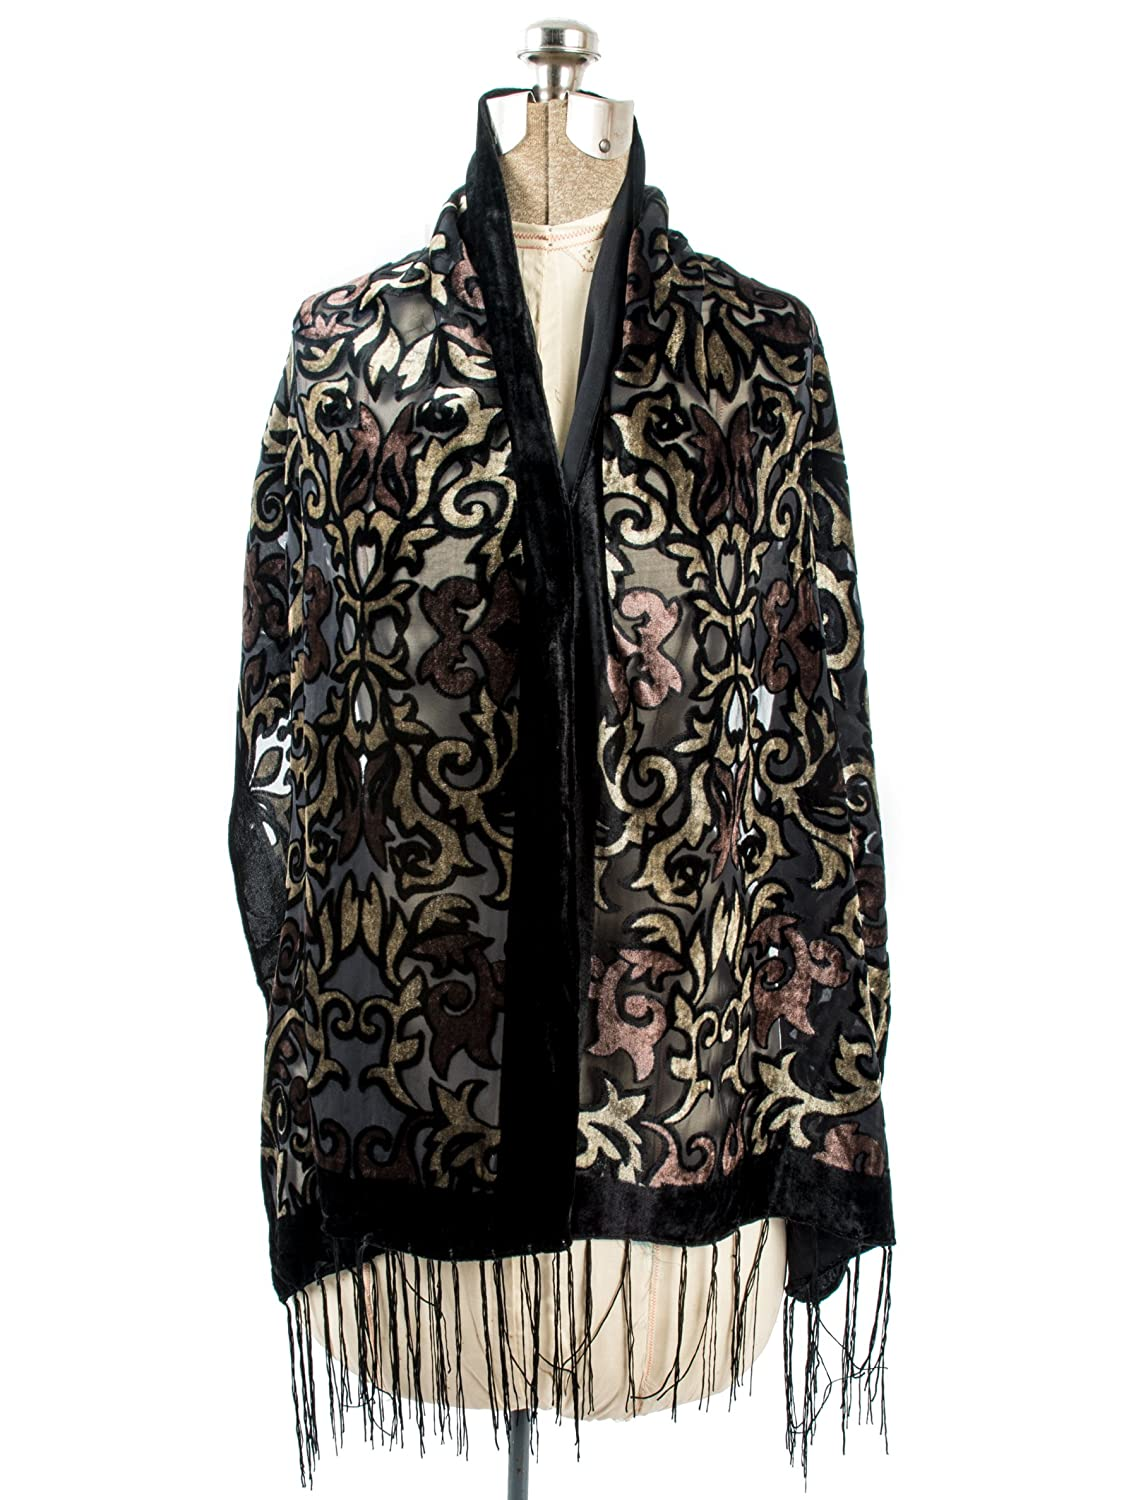 1920s Shawls, Scarves and Evening Jacket Tips Bohomonde Gia Scarf - Silk Brocade Print Velvet Burnout Scarf with Fringe Ends $17.95 AT vintagedancer.com